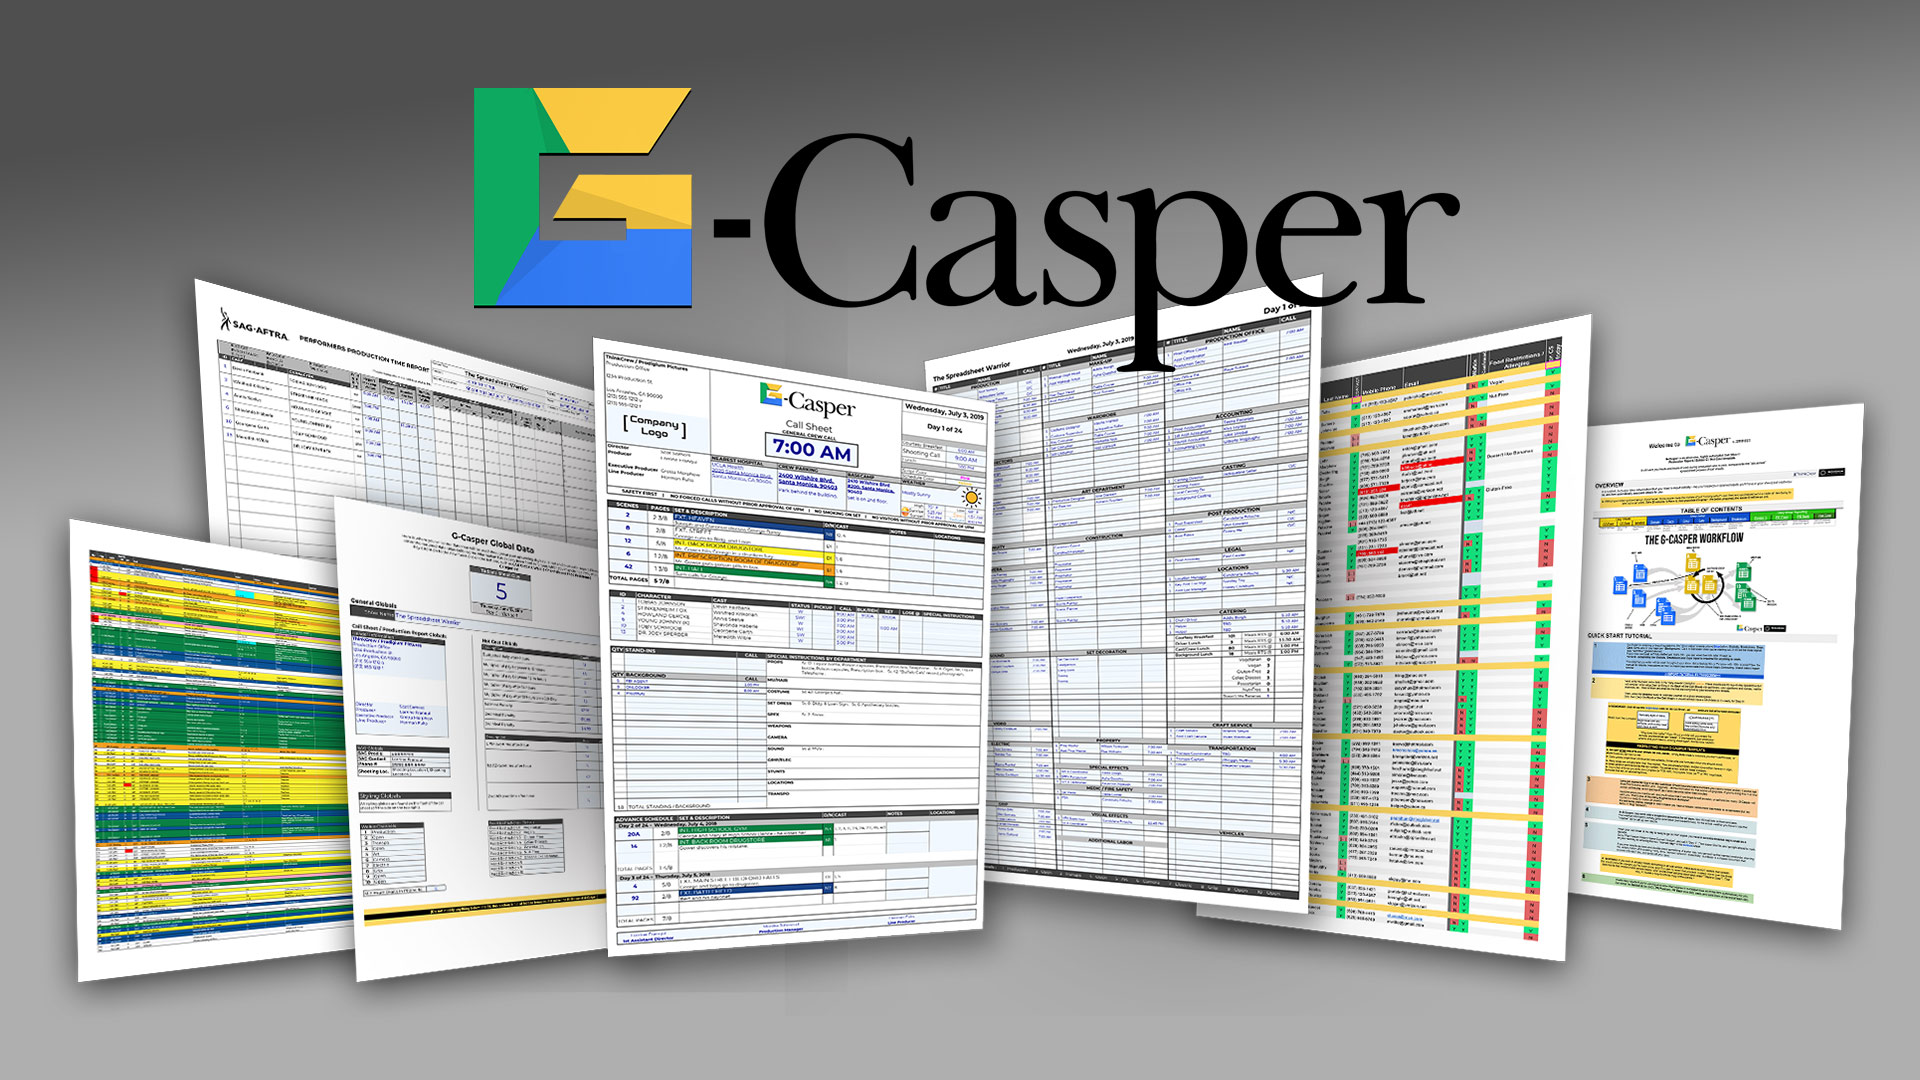 7 reasons to consider the new G-Casper when creating Call Sheets